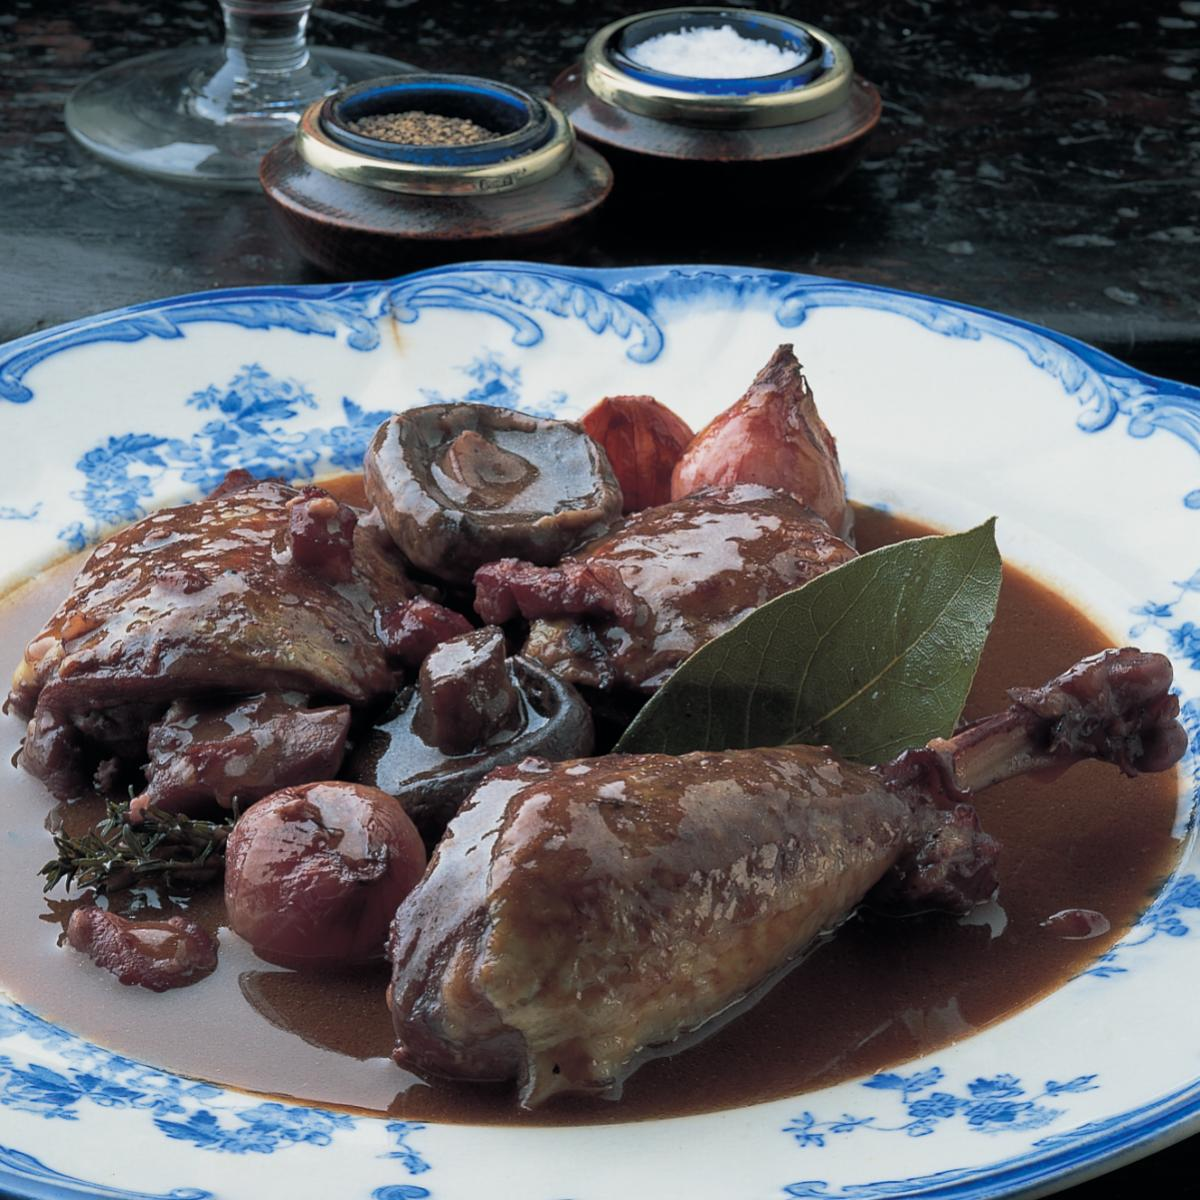 A picture of Delia's Coq au Vin recipe